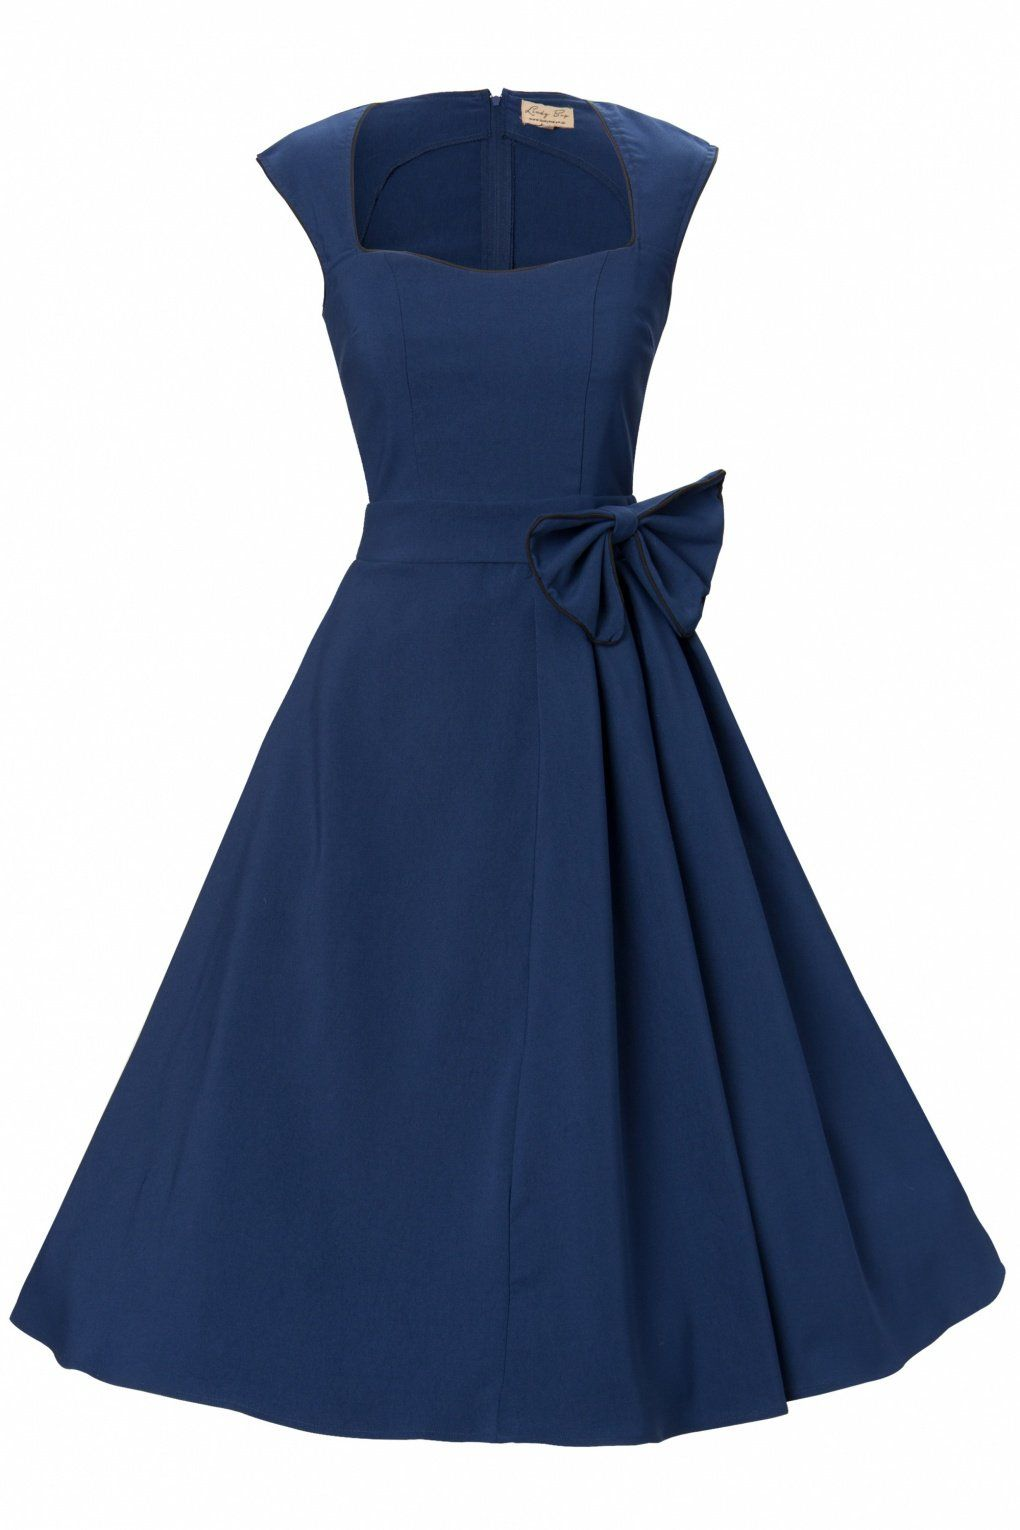 Das 1950\'s Grace Midnight Blue Bow vintage style swing party ...